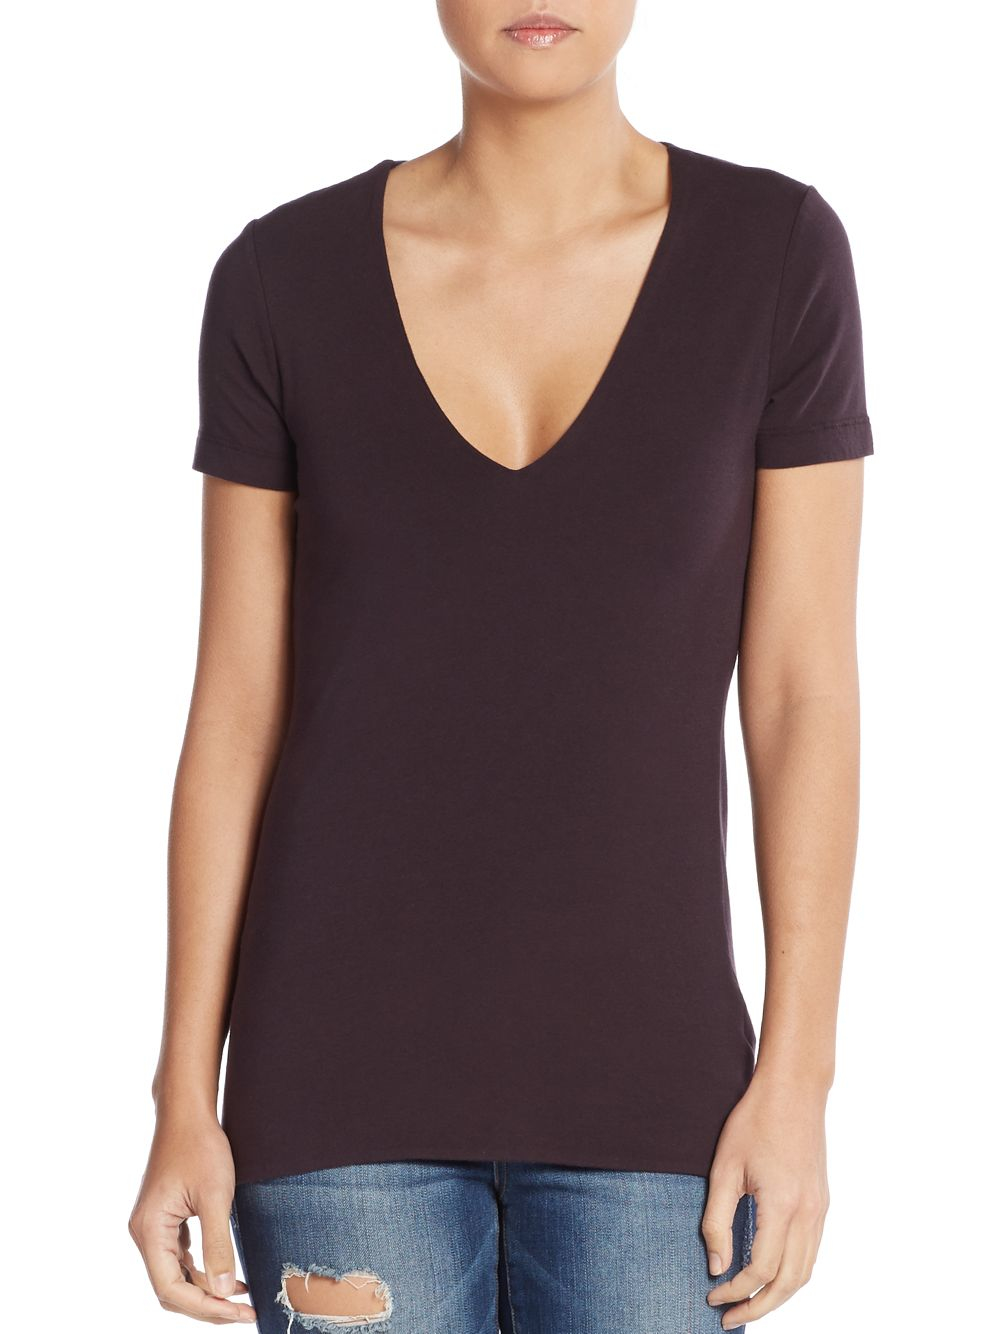 The versatile women's v neck t shirts are tailored for lasting wear after every wash. The women v neck t shirts from Old Navy offer simple yet impacting wardrobe staples that make looking wonderful a cinch. Shipping is on us! FREE on orders of $50 or more. FREE Returns on .